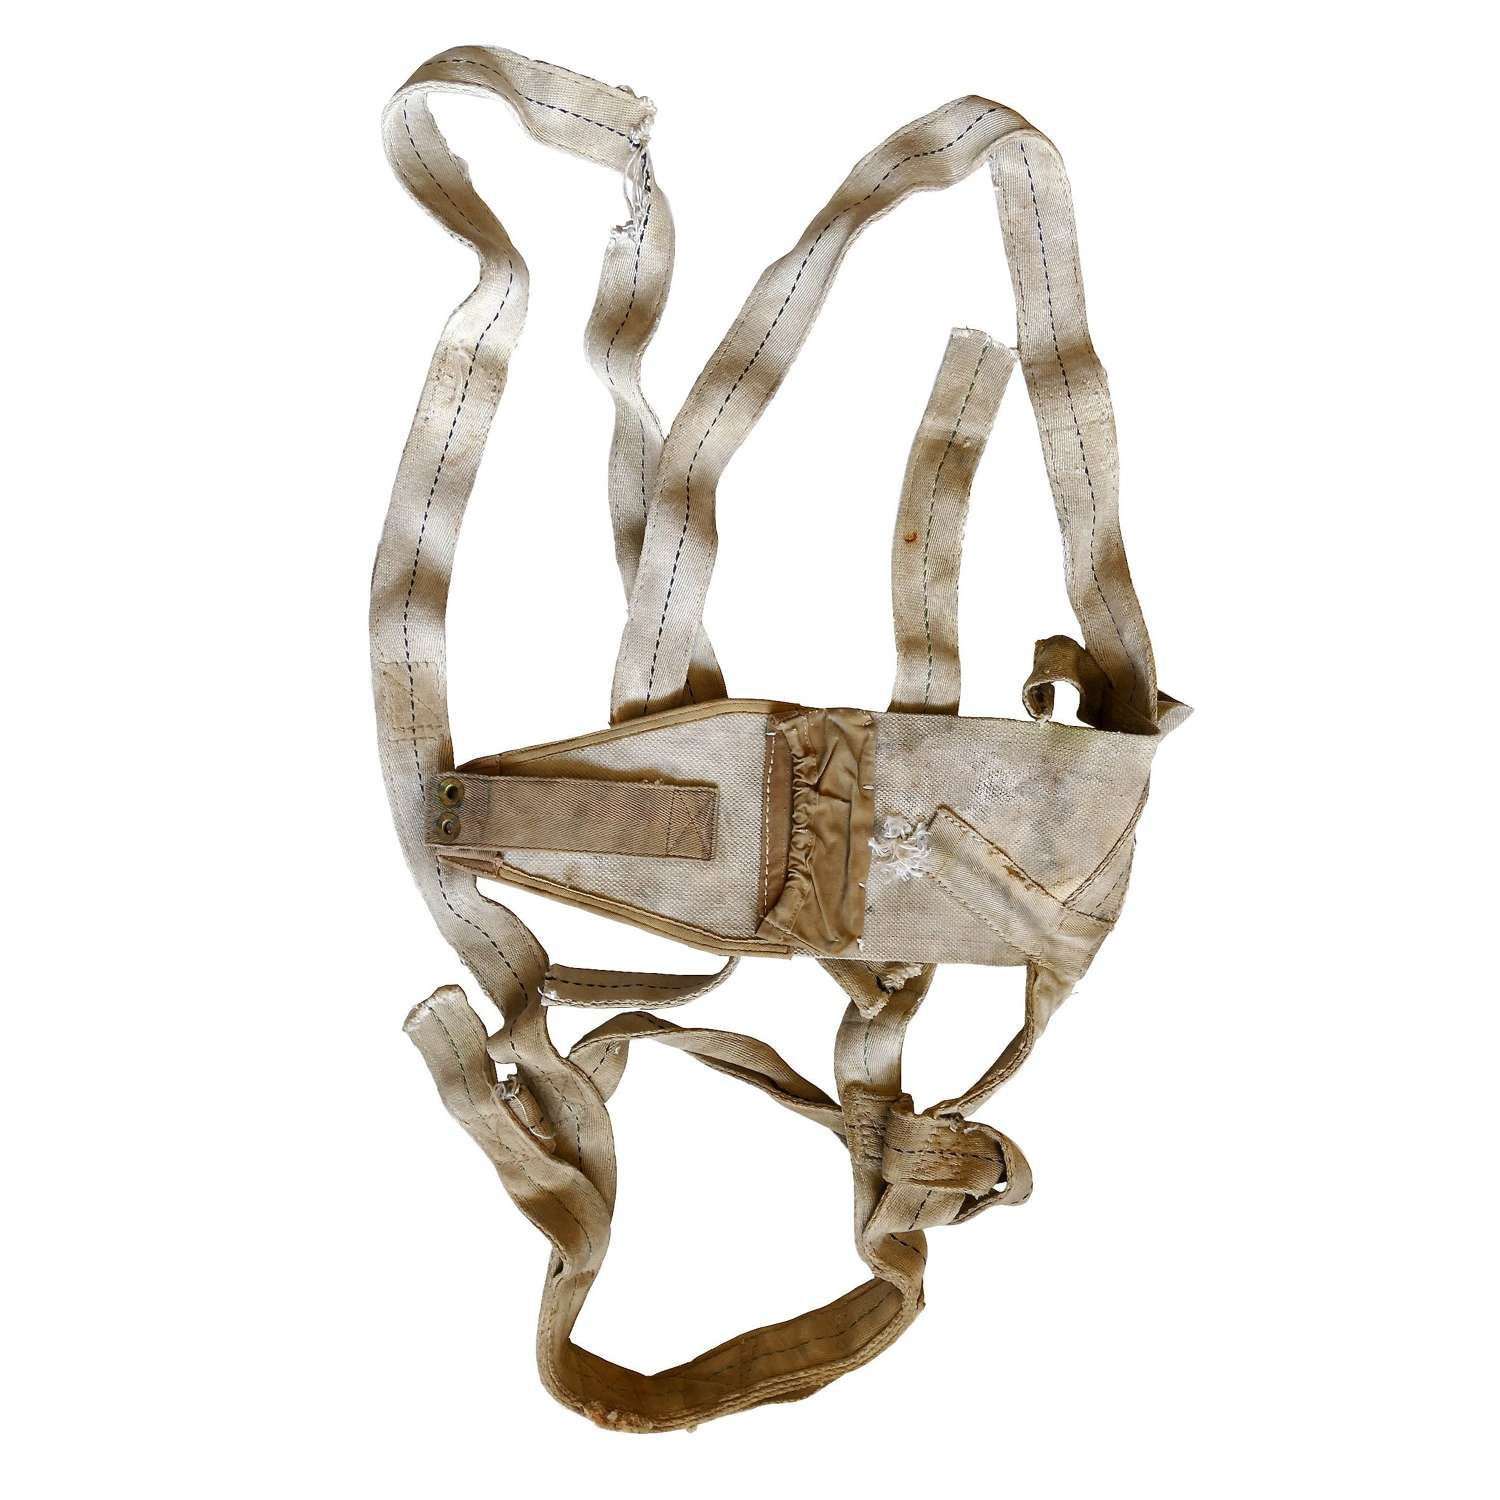 RAF seat type parachute harness - relic